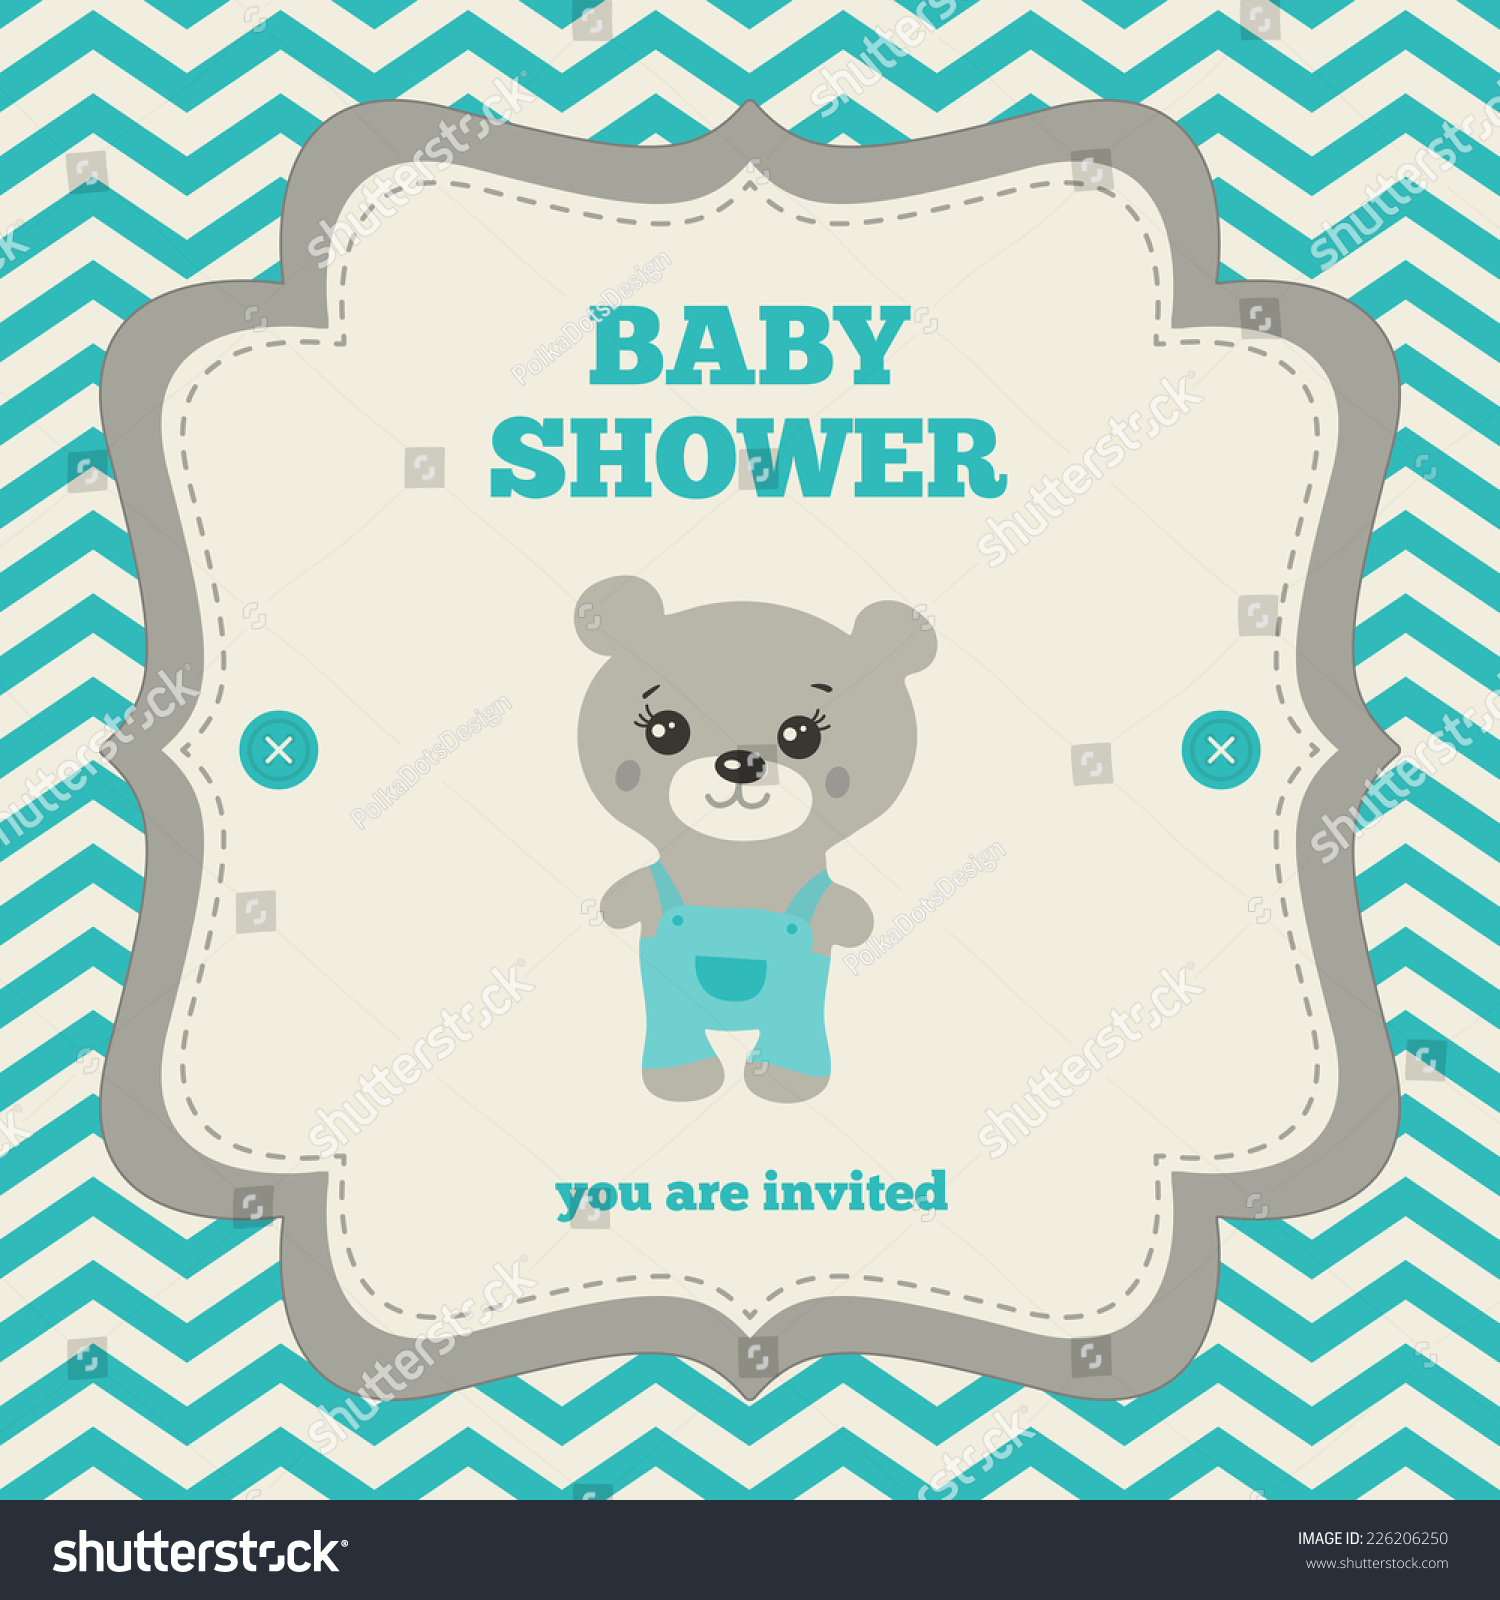 Baby Shower Invitation Template Gray Blue Stock Vector HD (Royalty ...